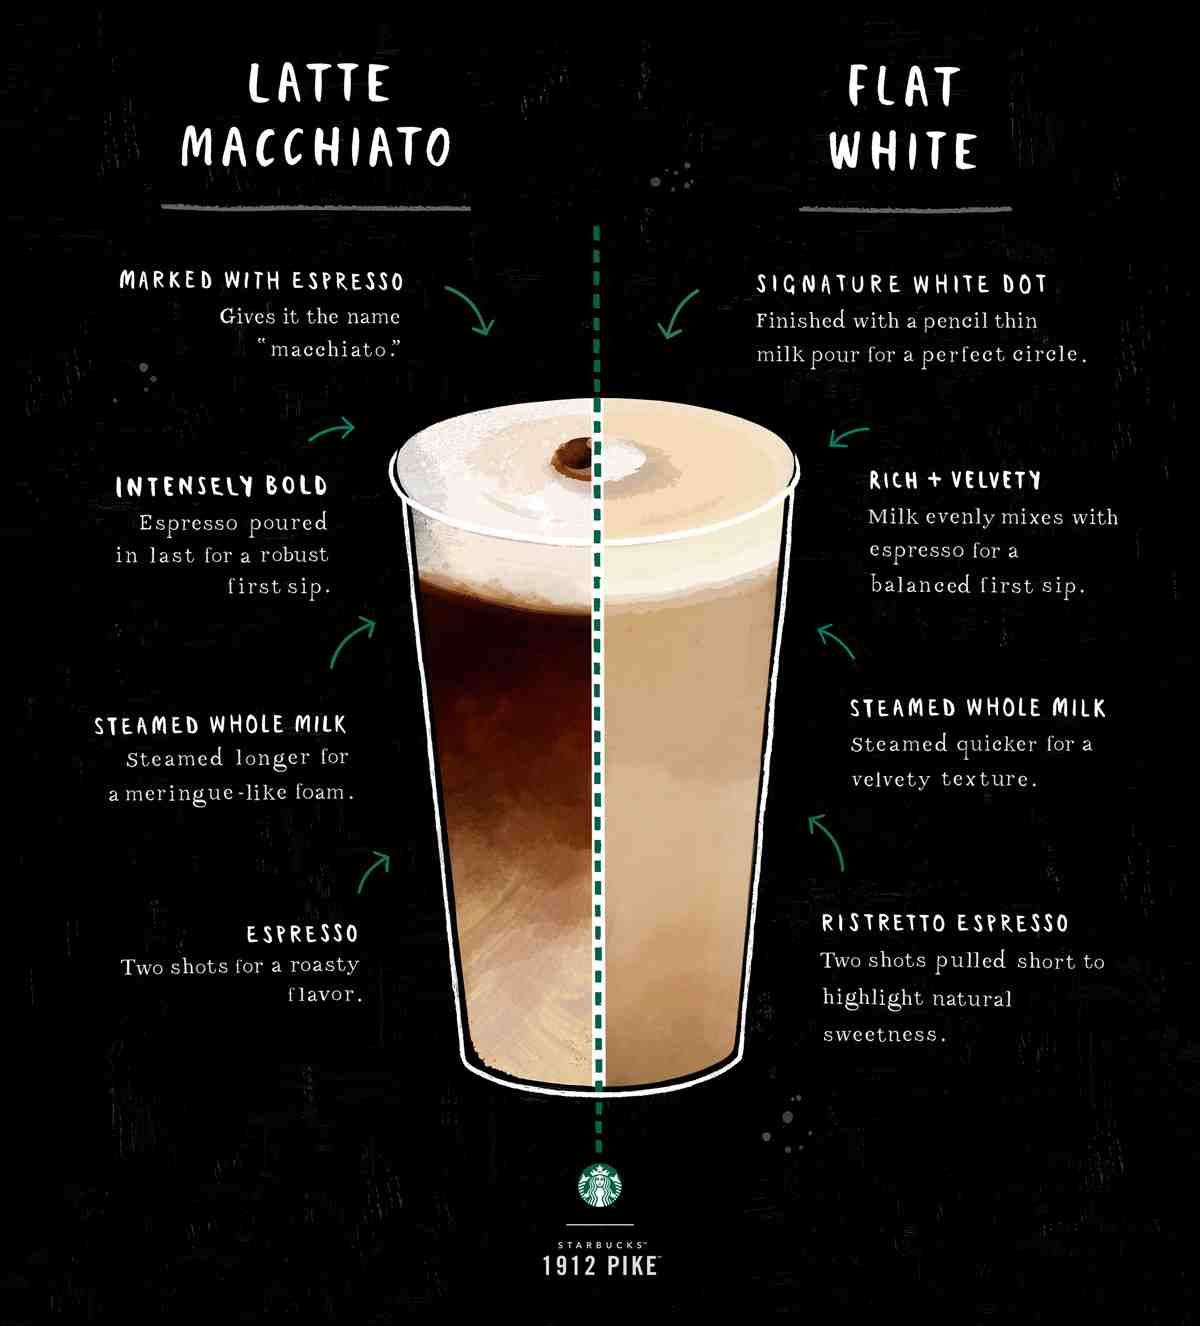 medium resolution of latte macchiato vs the flat white here s the breakdown and the differences